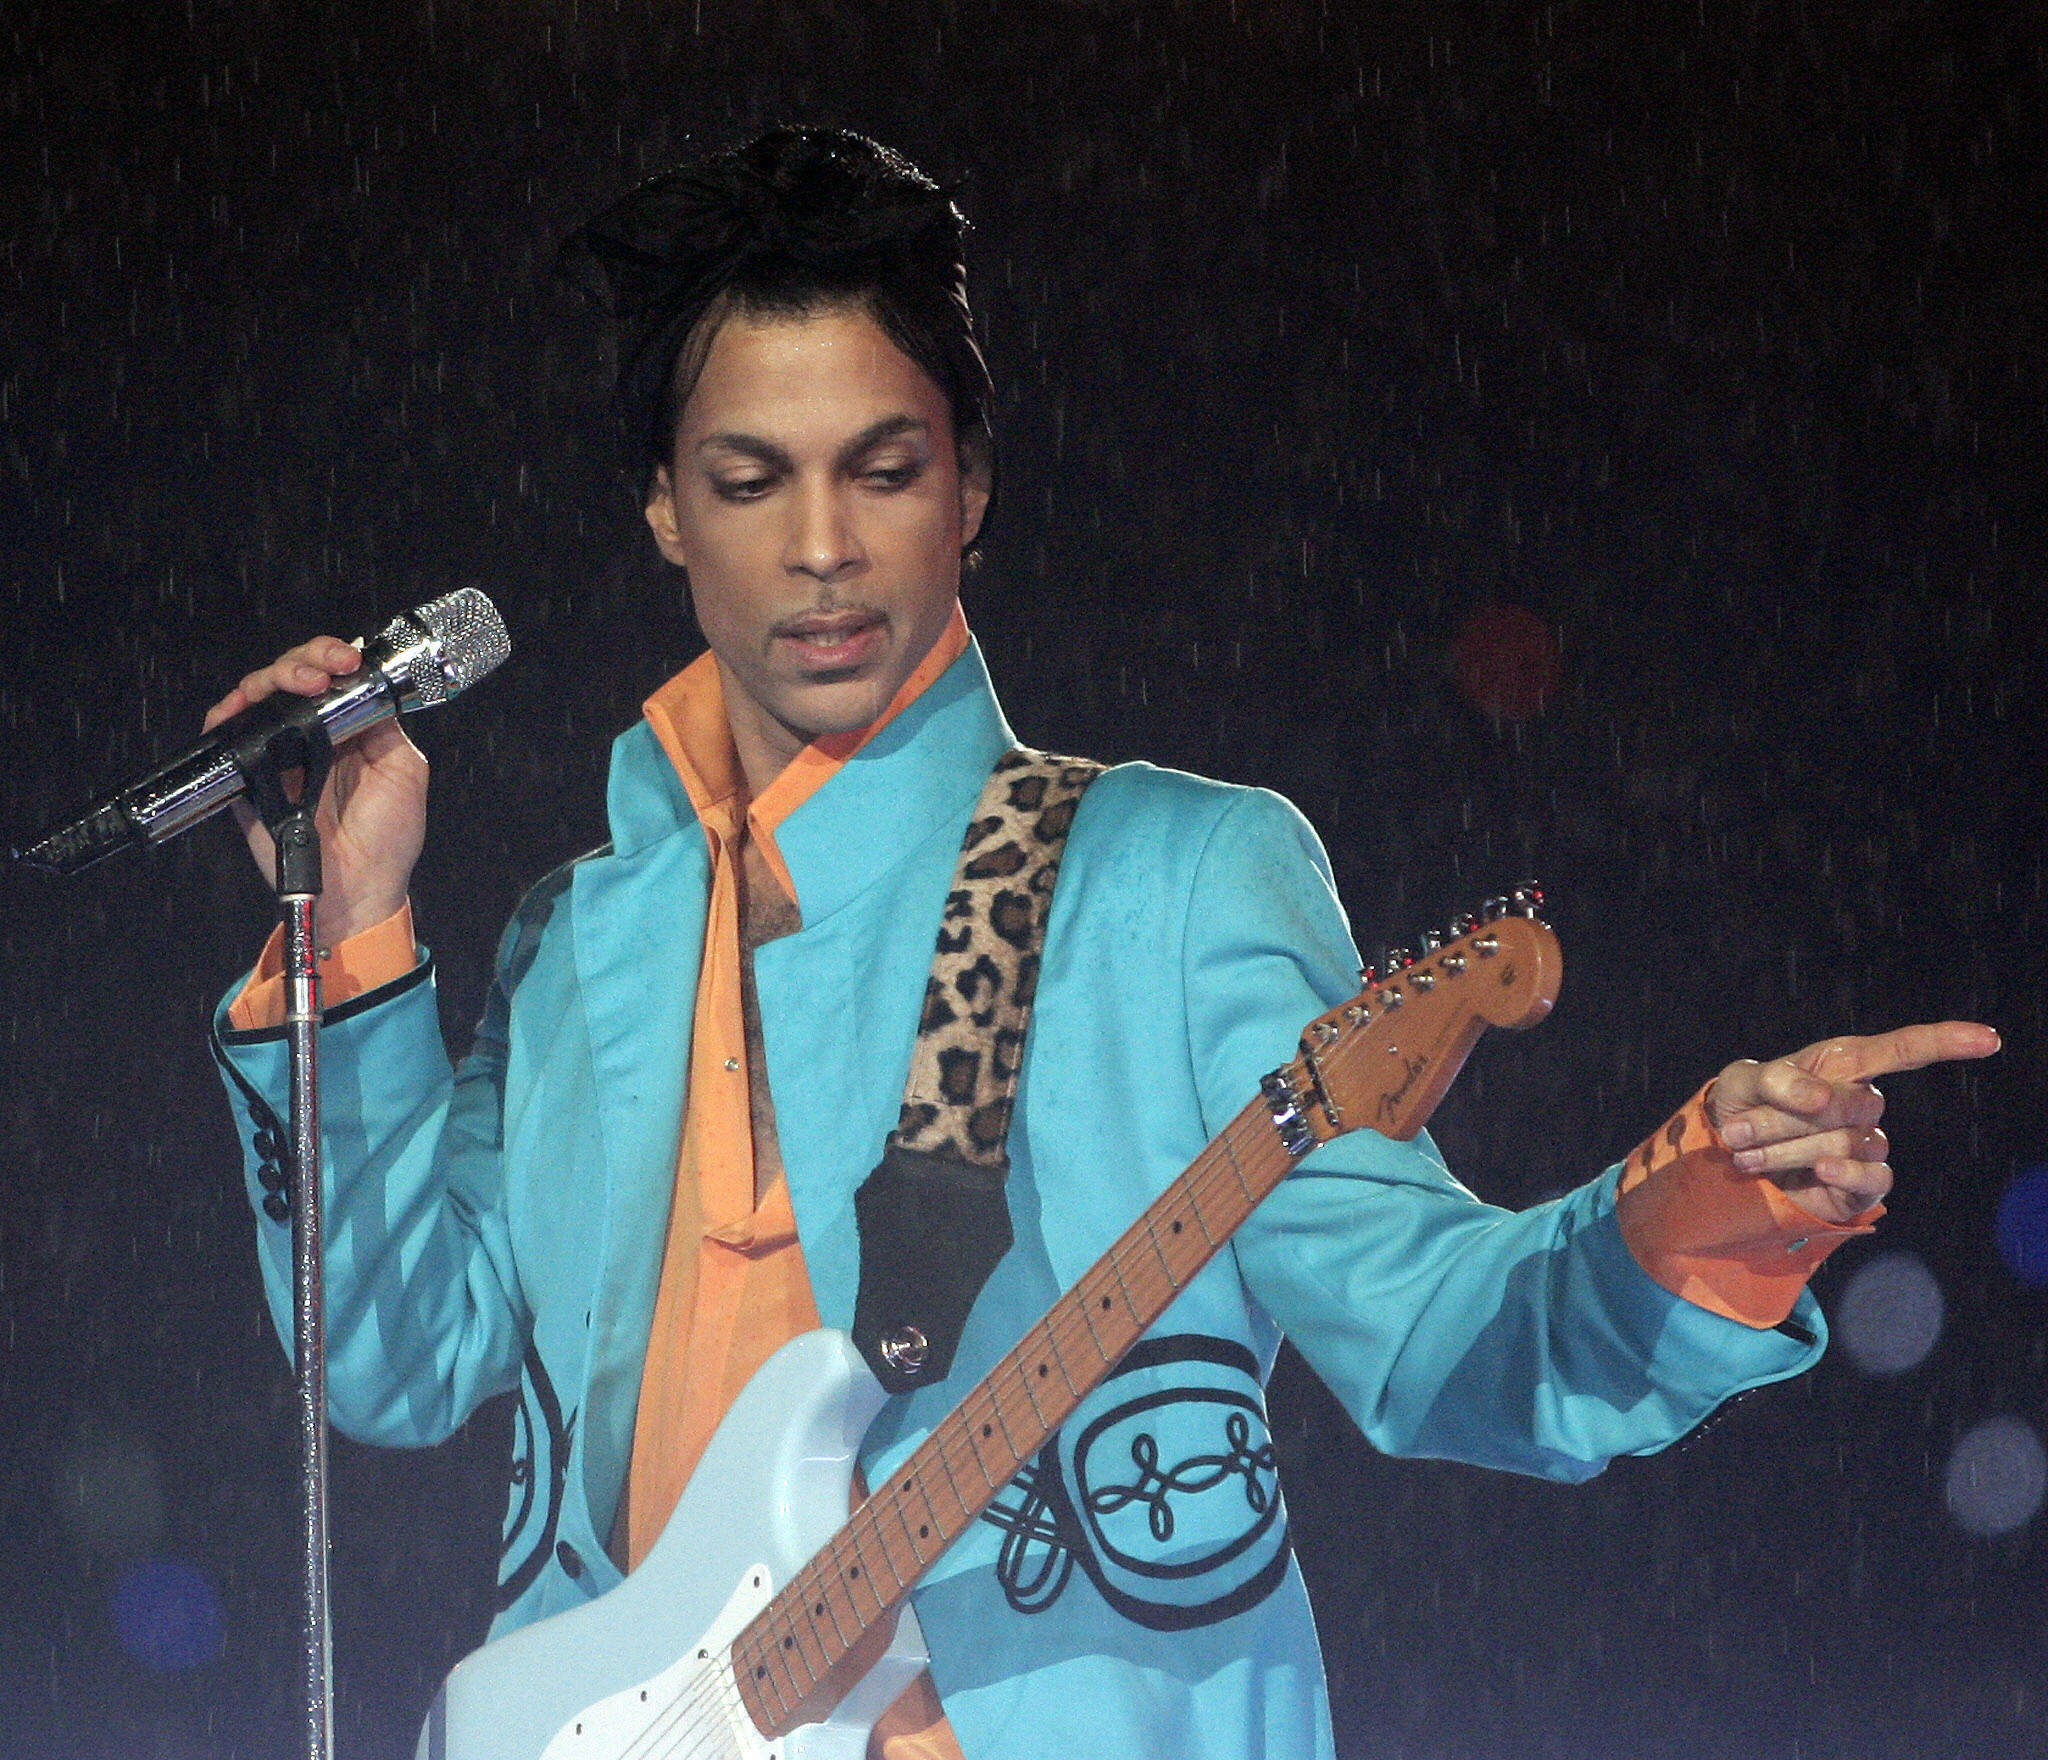 Prince Died of Opioid Overdose: Report